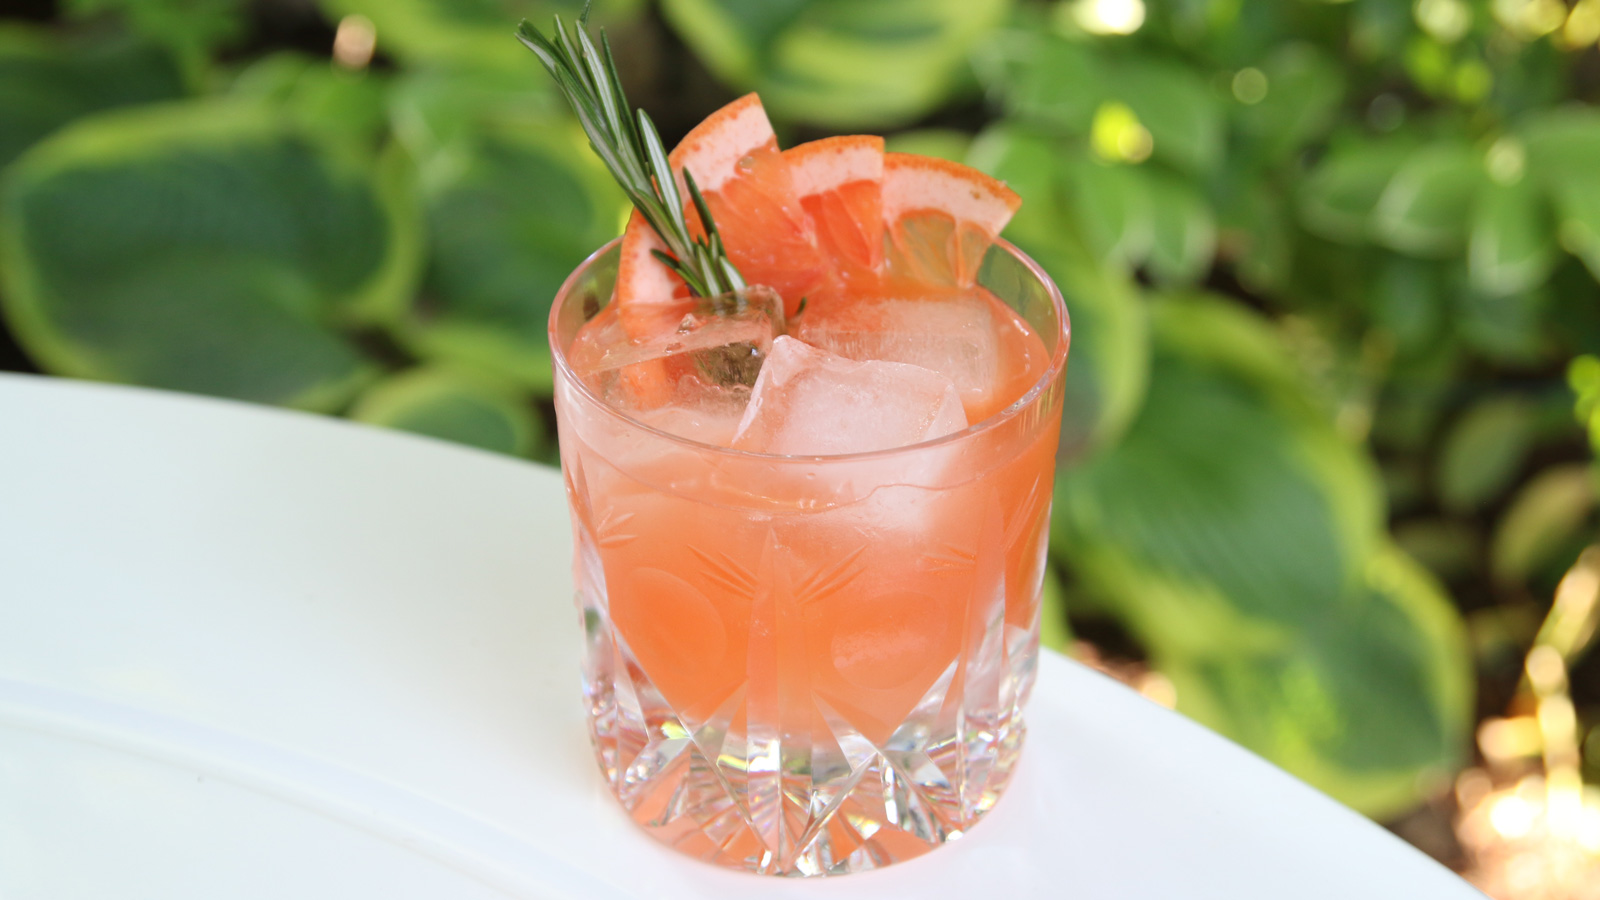 Grapefruit & Rosemary Reposado Cocktail